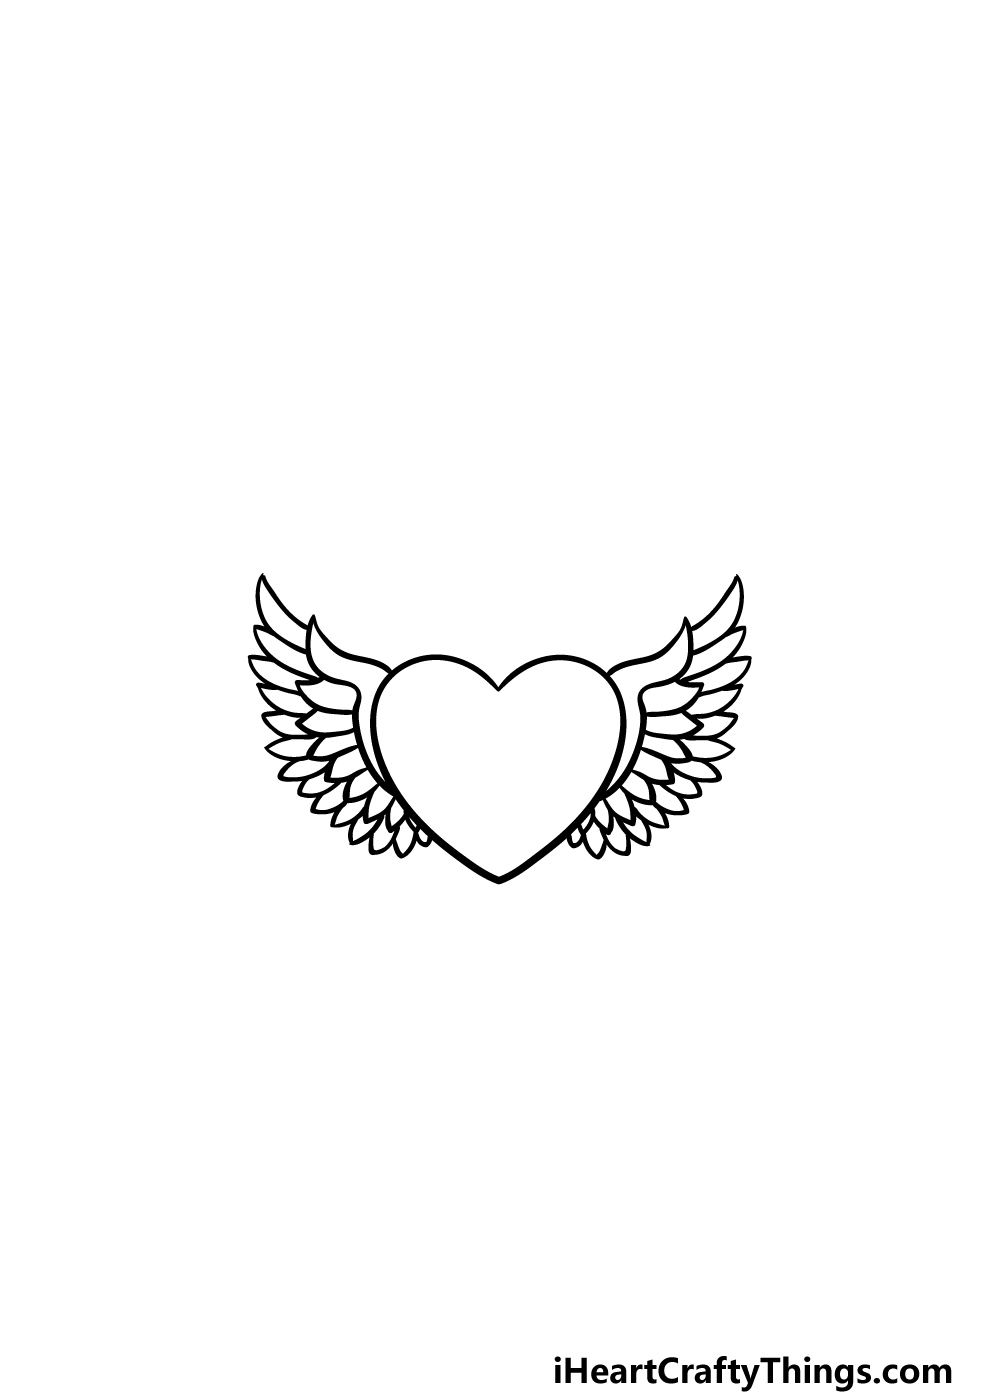 drawing a heart with wings step 3